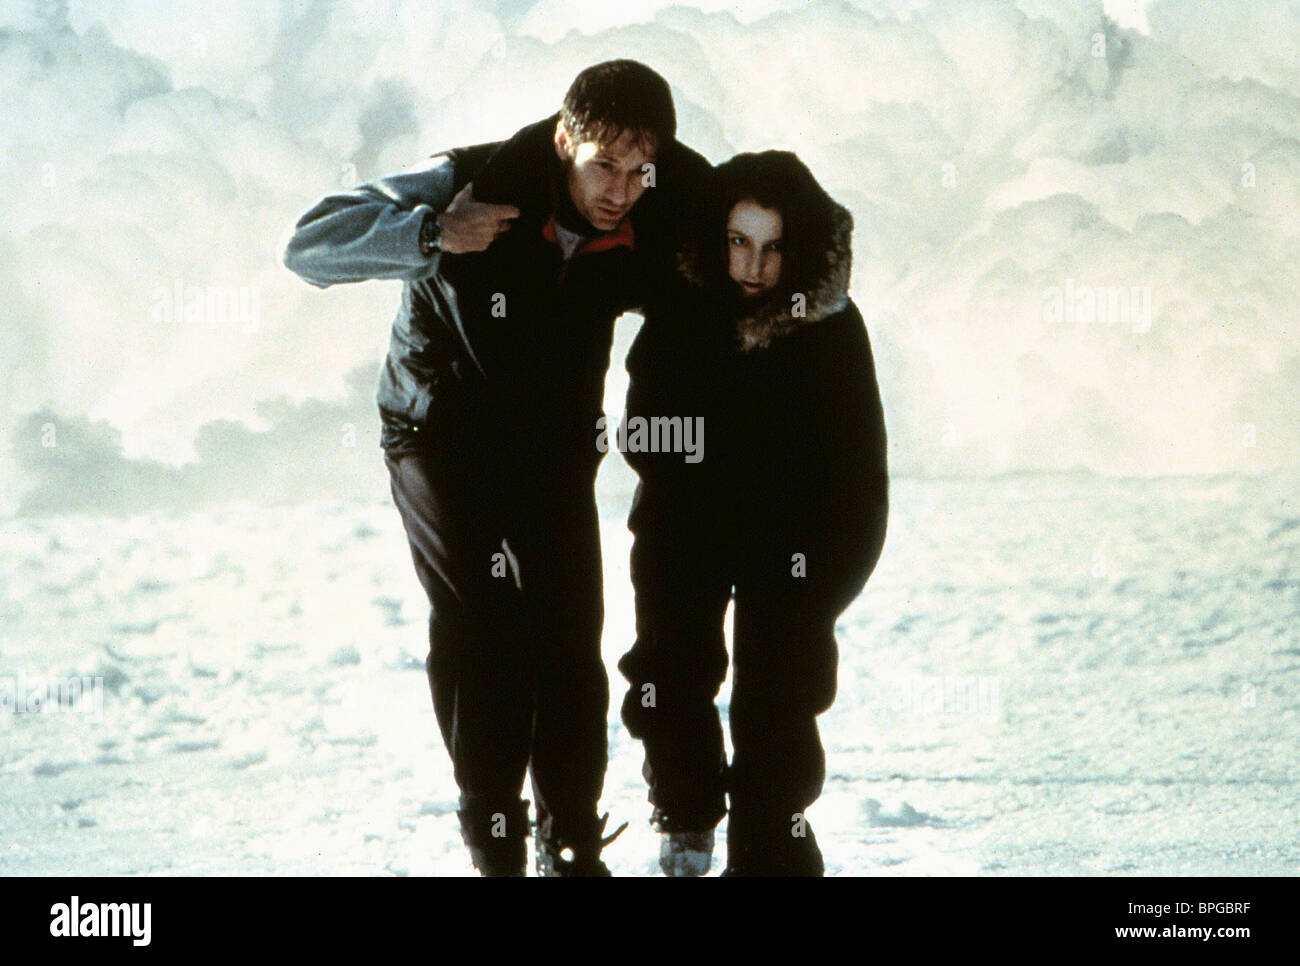 DAVID DUCHOVNY & GILLIAN ANDERSON THE X-FILES: THE MOVIE (1998) - Stock Image